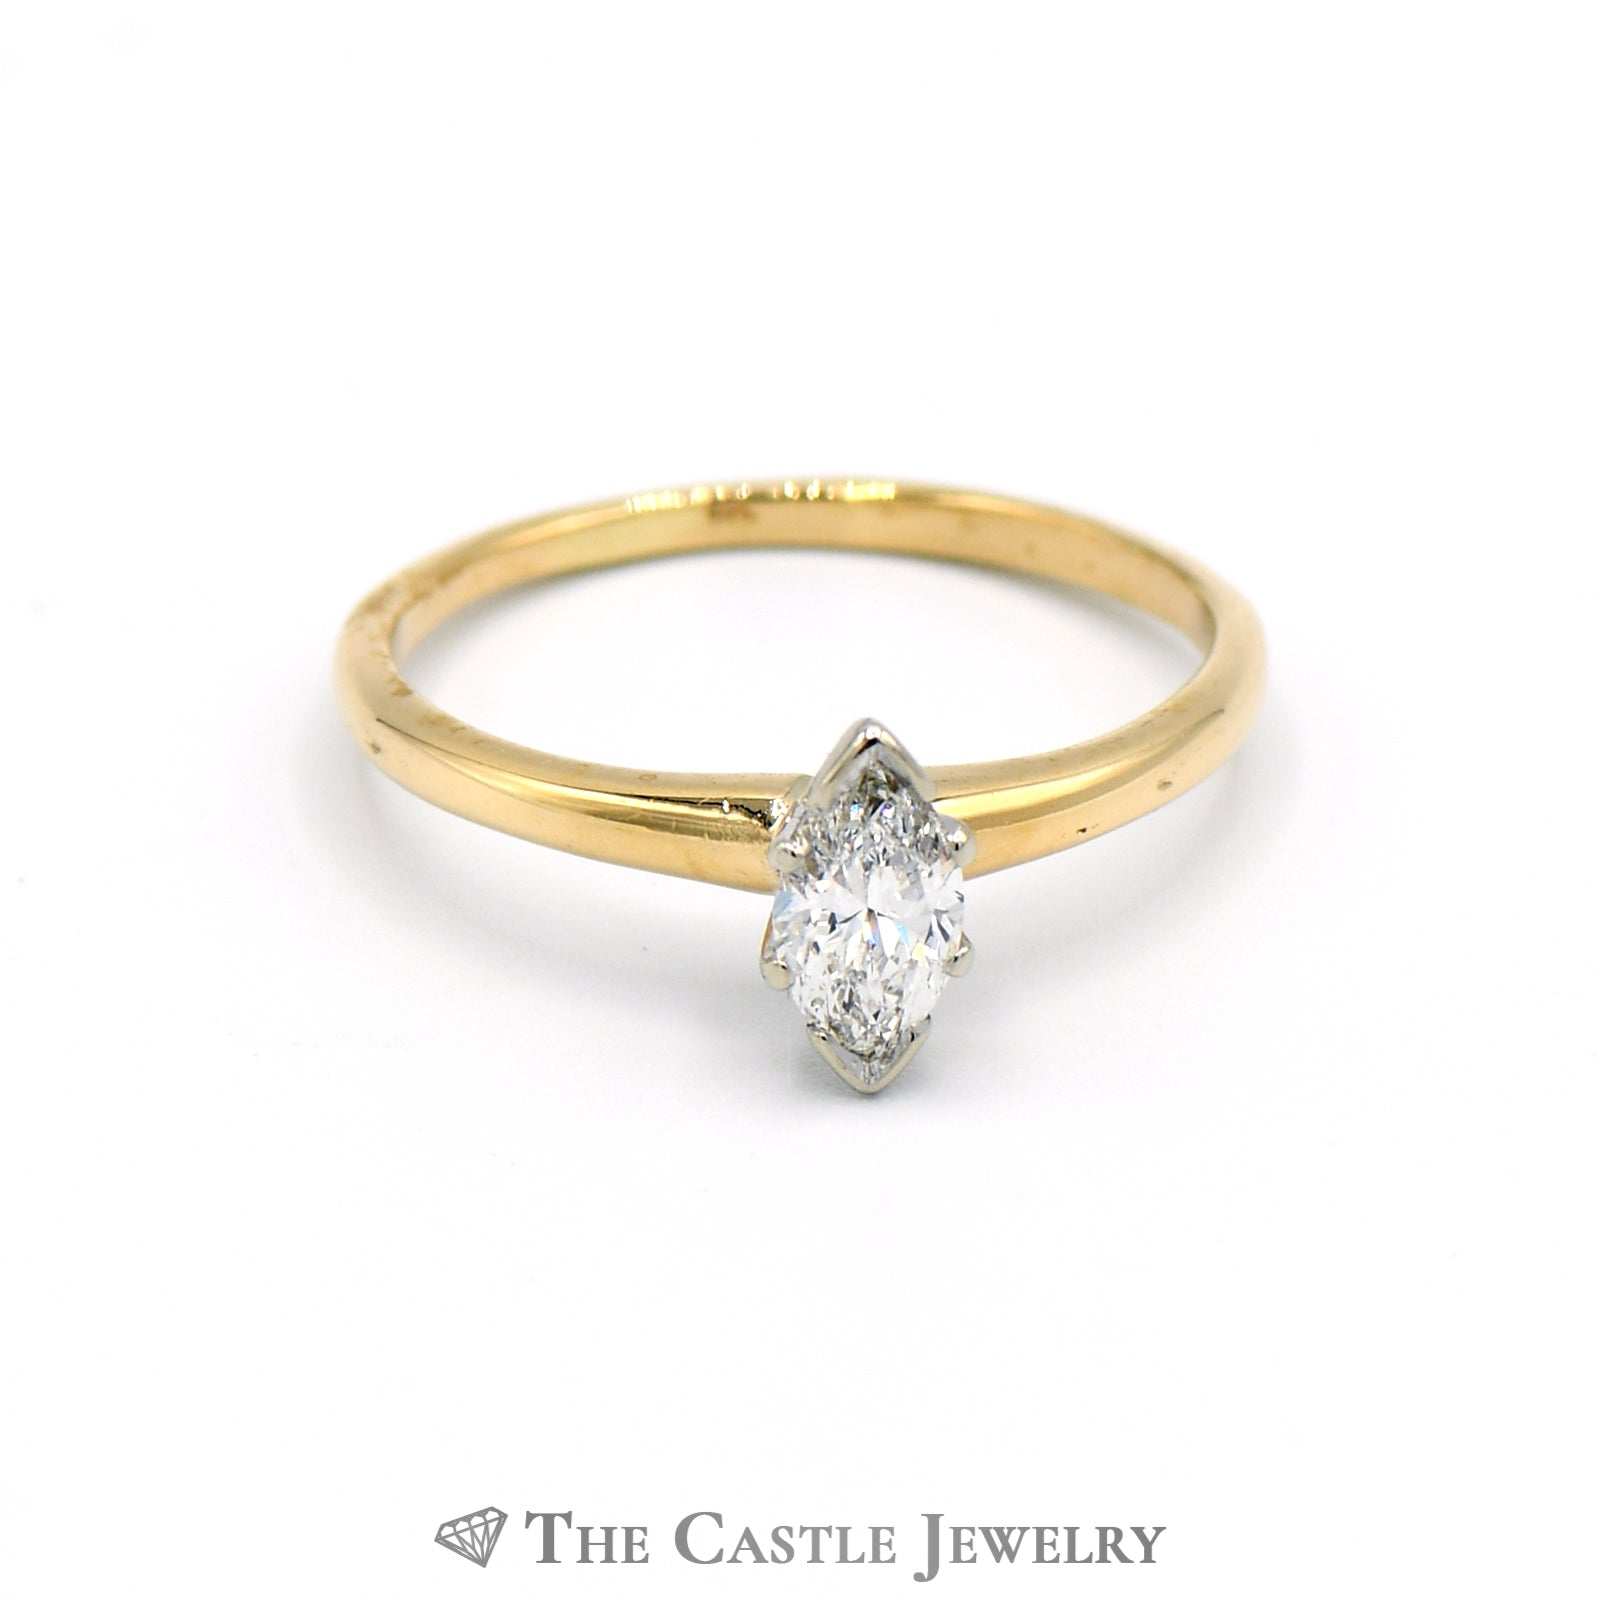 Marquise Cut .45 Carat Solitaire Engagement Ring in 14k Yellow Gold